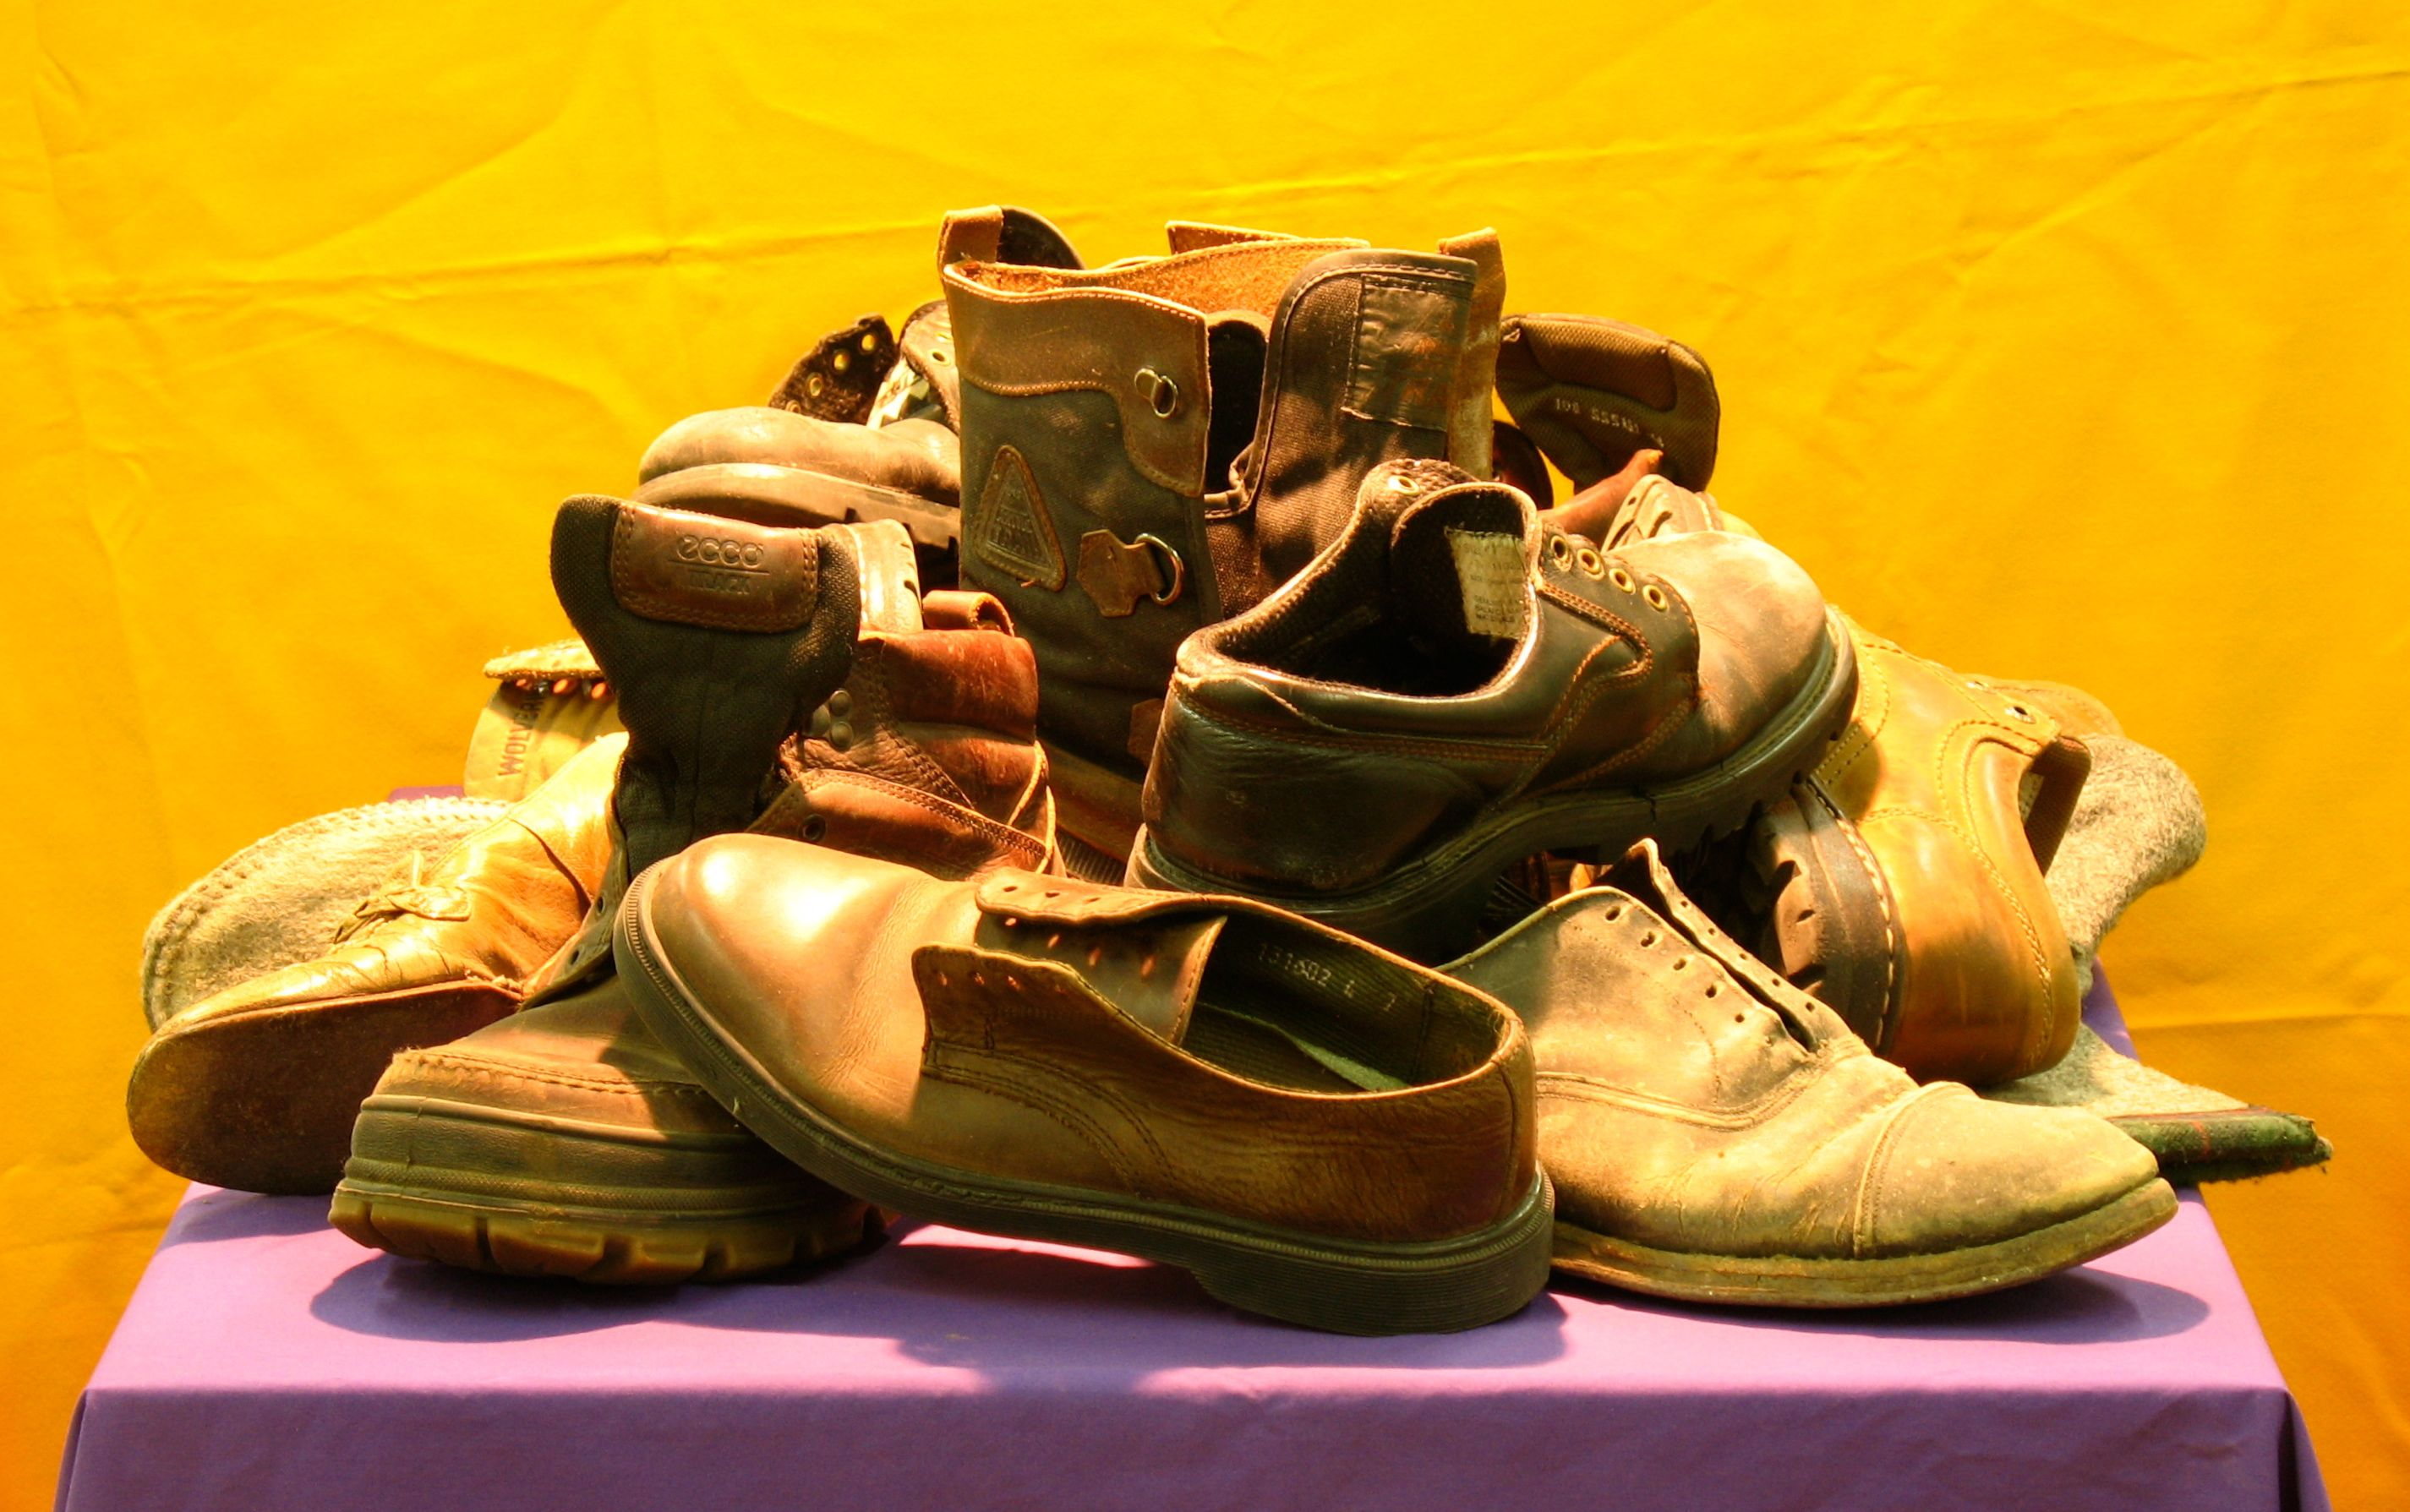 A great way to break the ice is the Shoe Pile MeetandGreet Mingle Game This icebreaker game is especially useful for corporations and training situations where you